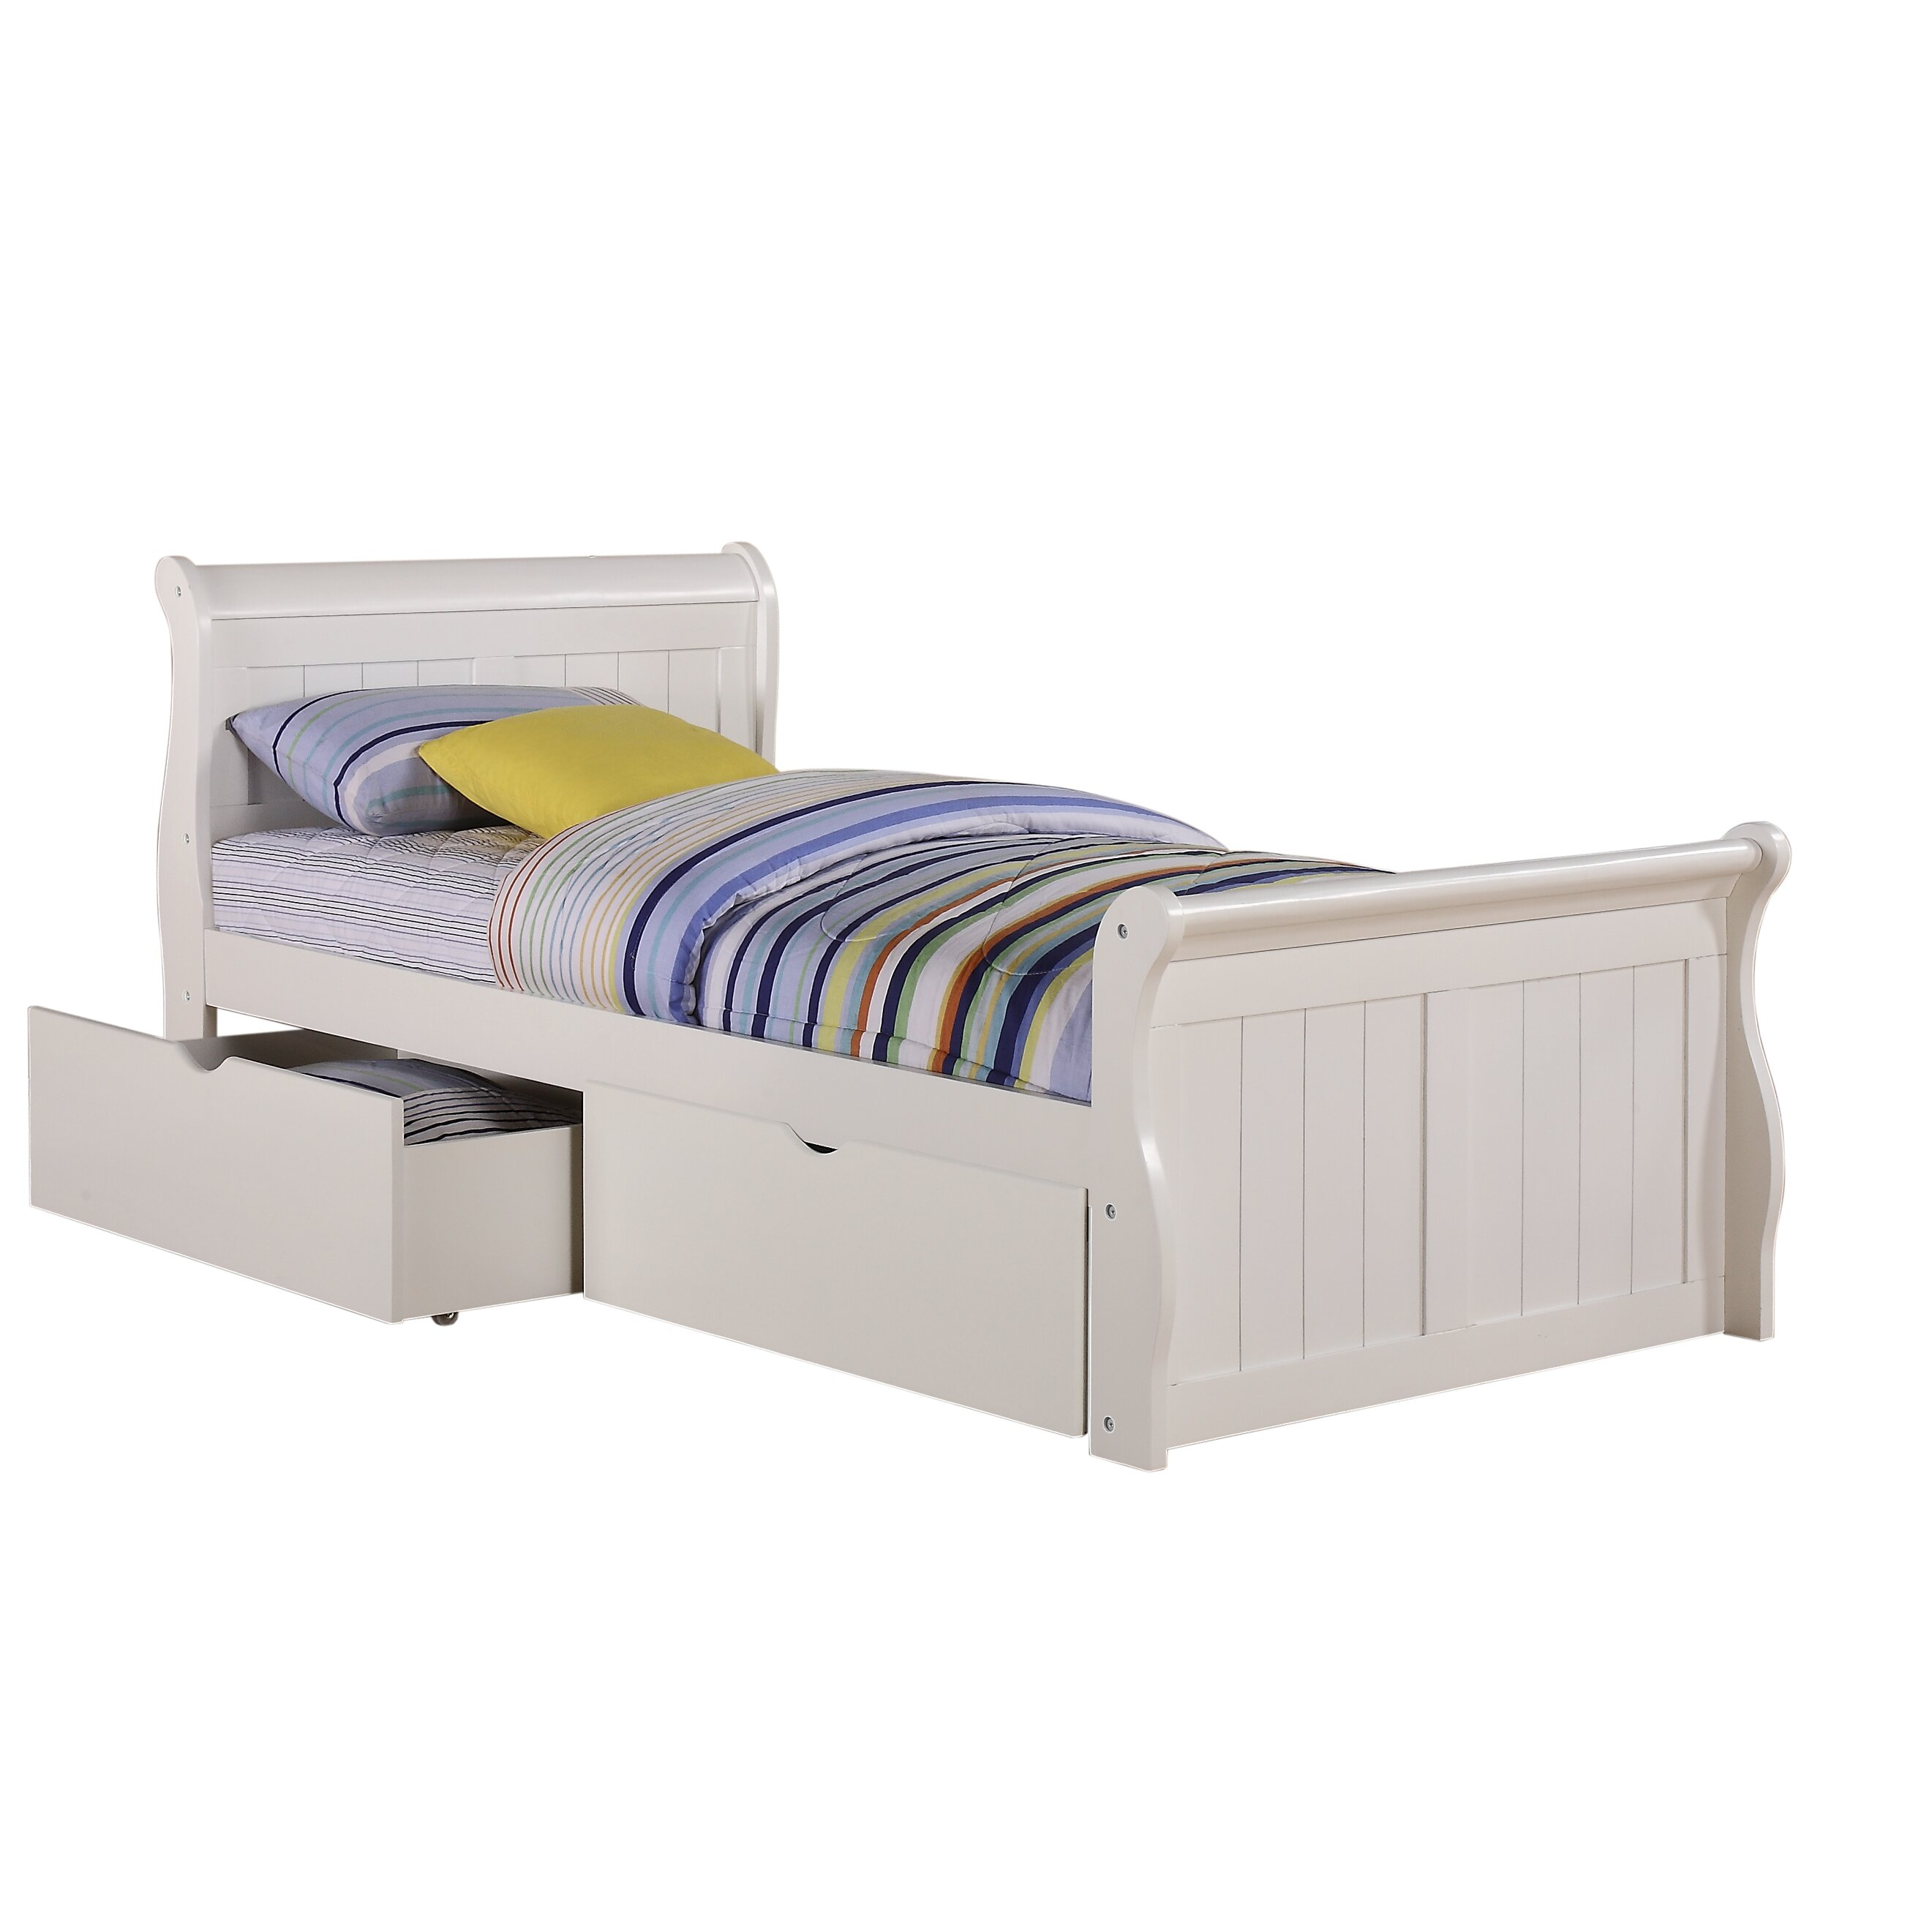 Donco Kids Sleigh Bed With